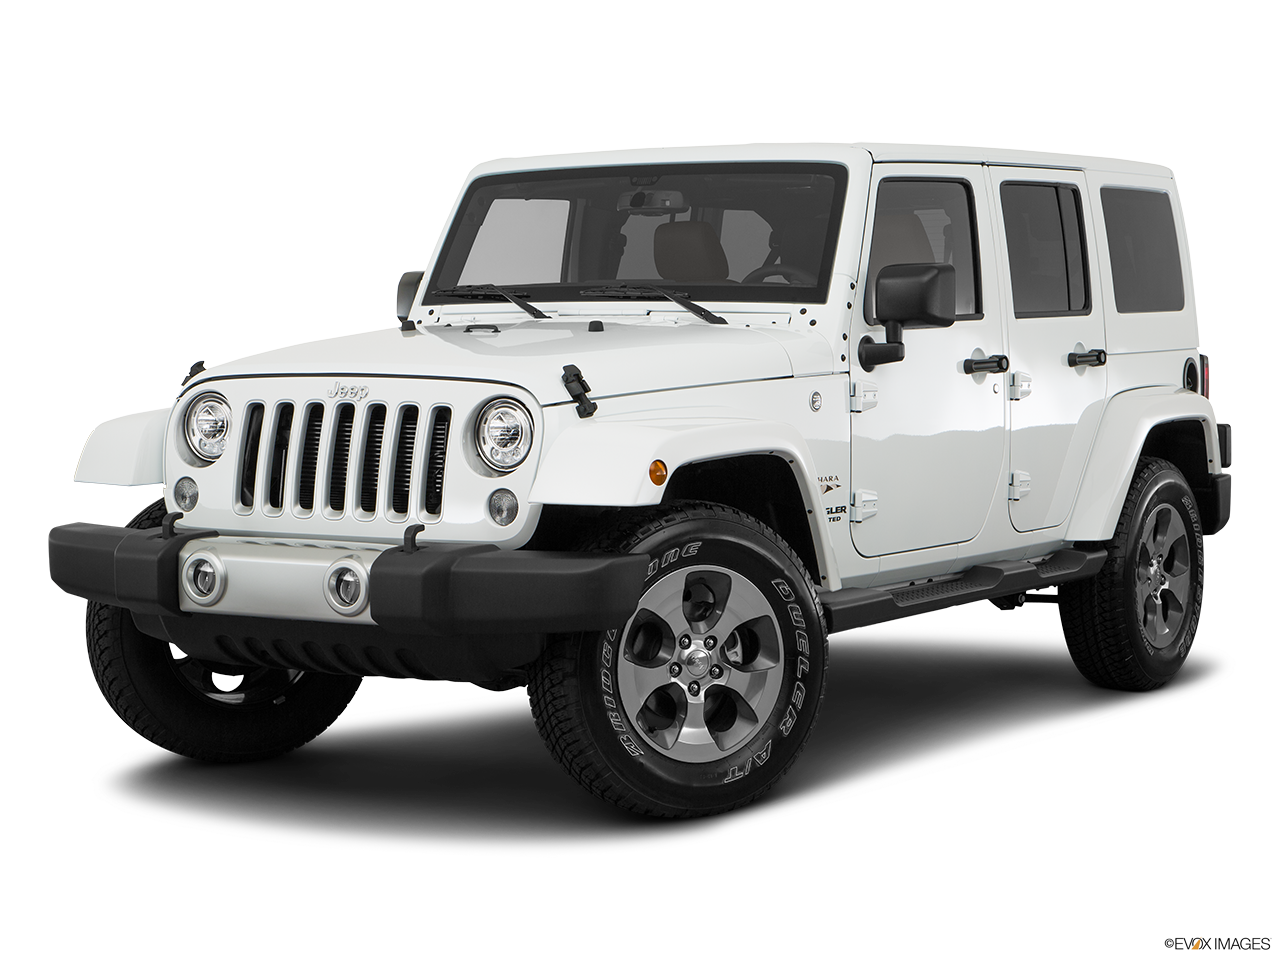 Test Drive A 2017 Jeep Wrangler Unlimited at Arrigo Dodge Chrysler Jeep Ram Ft. Pierce in Fort Pierce